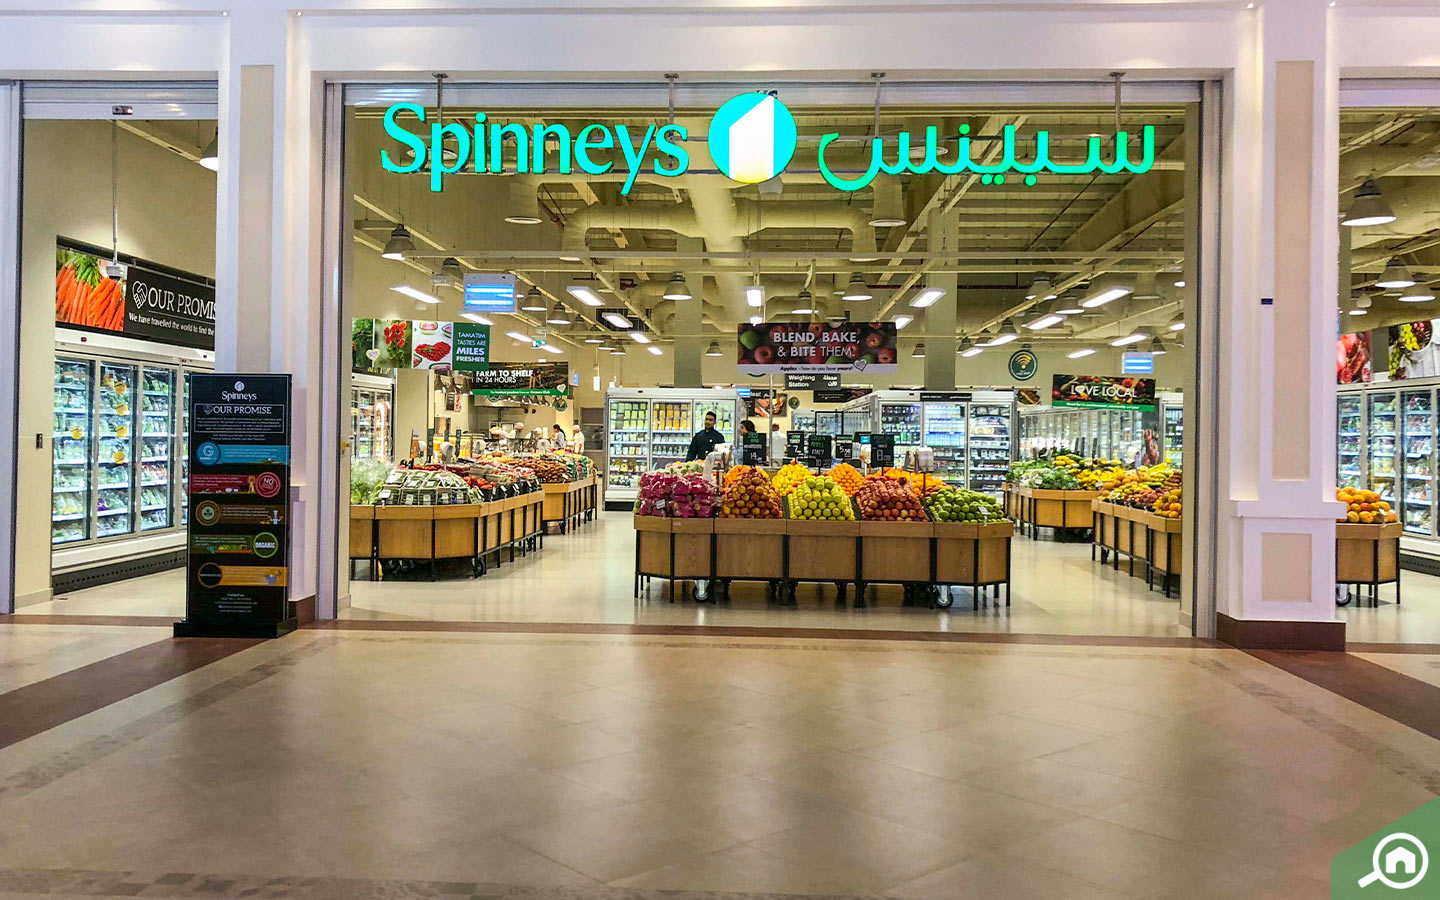 Entrance to a Spinneys supermarket